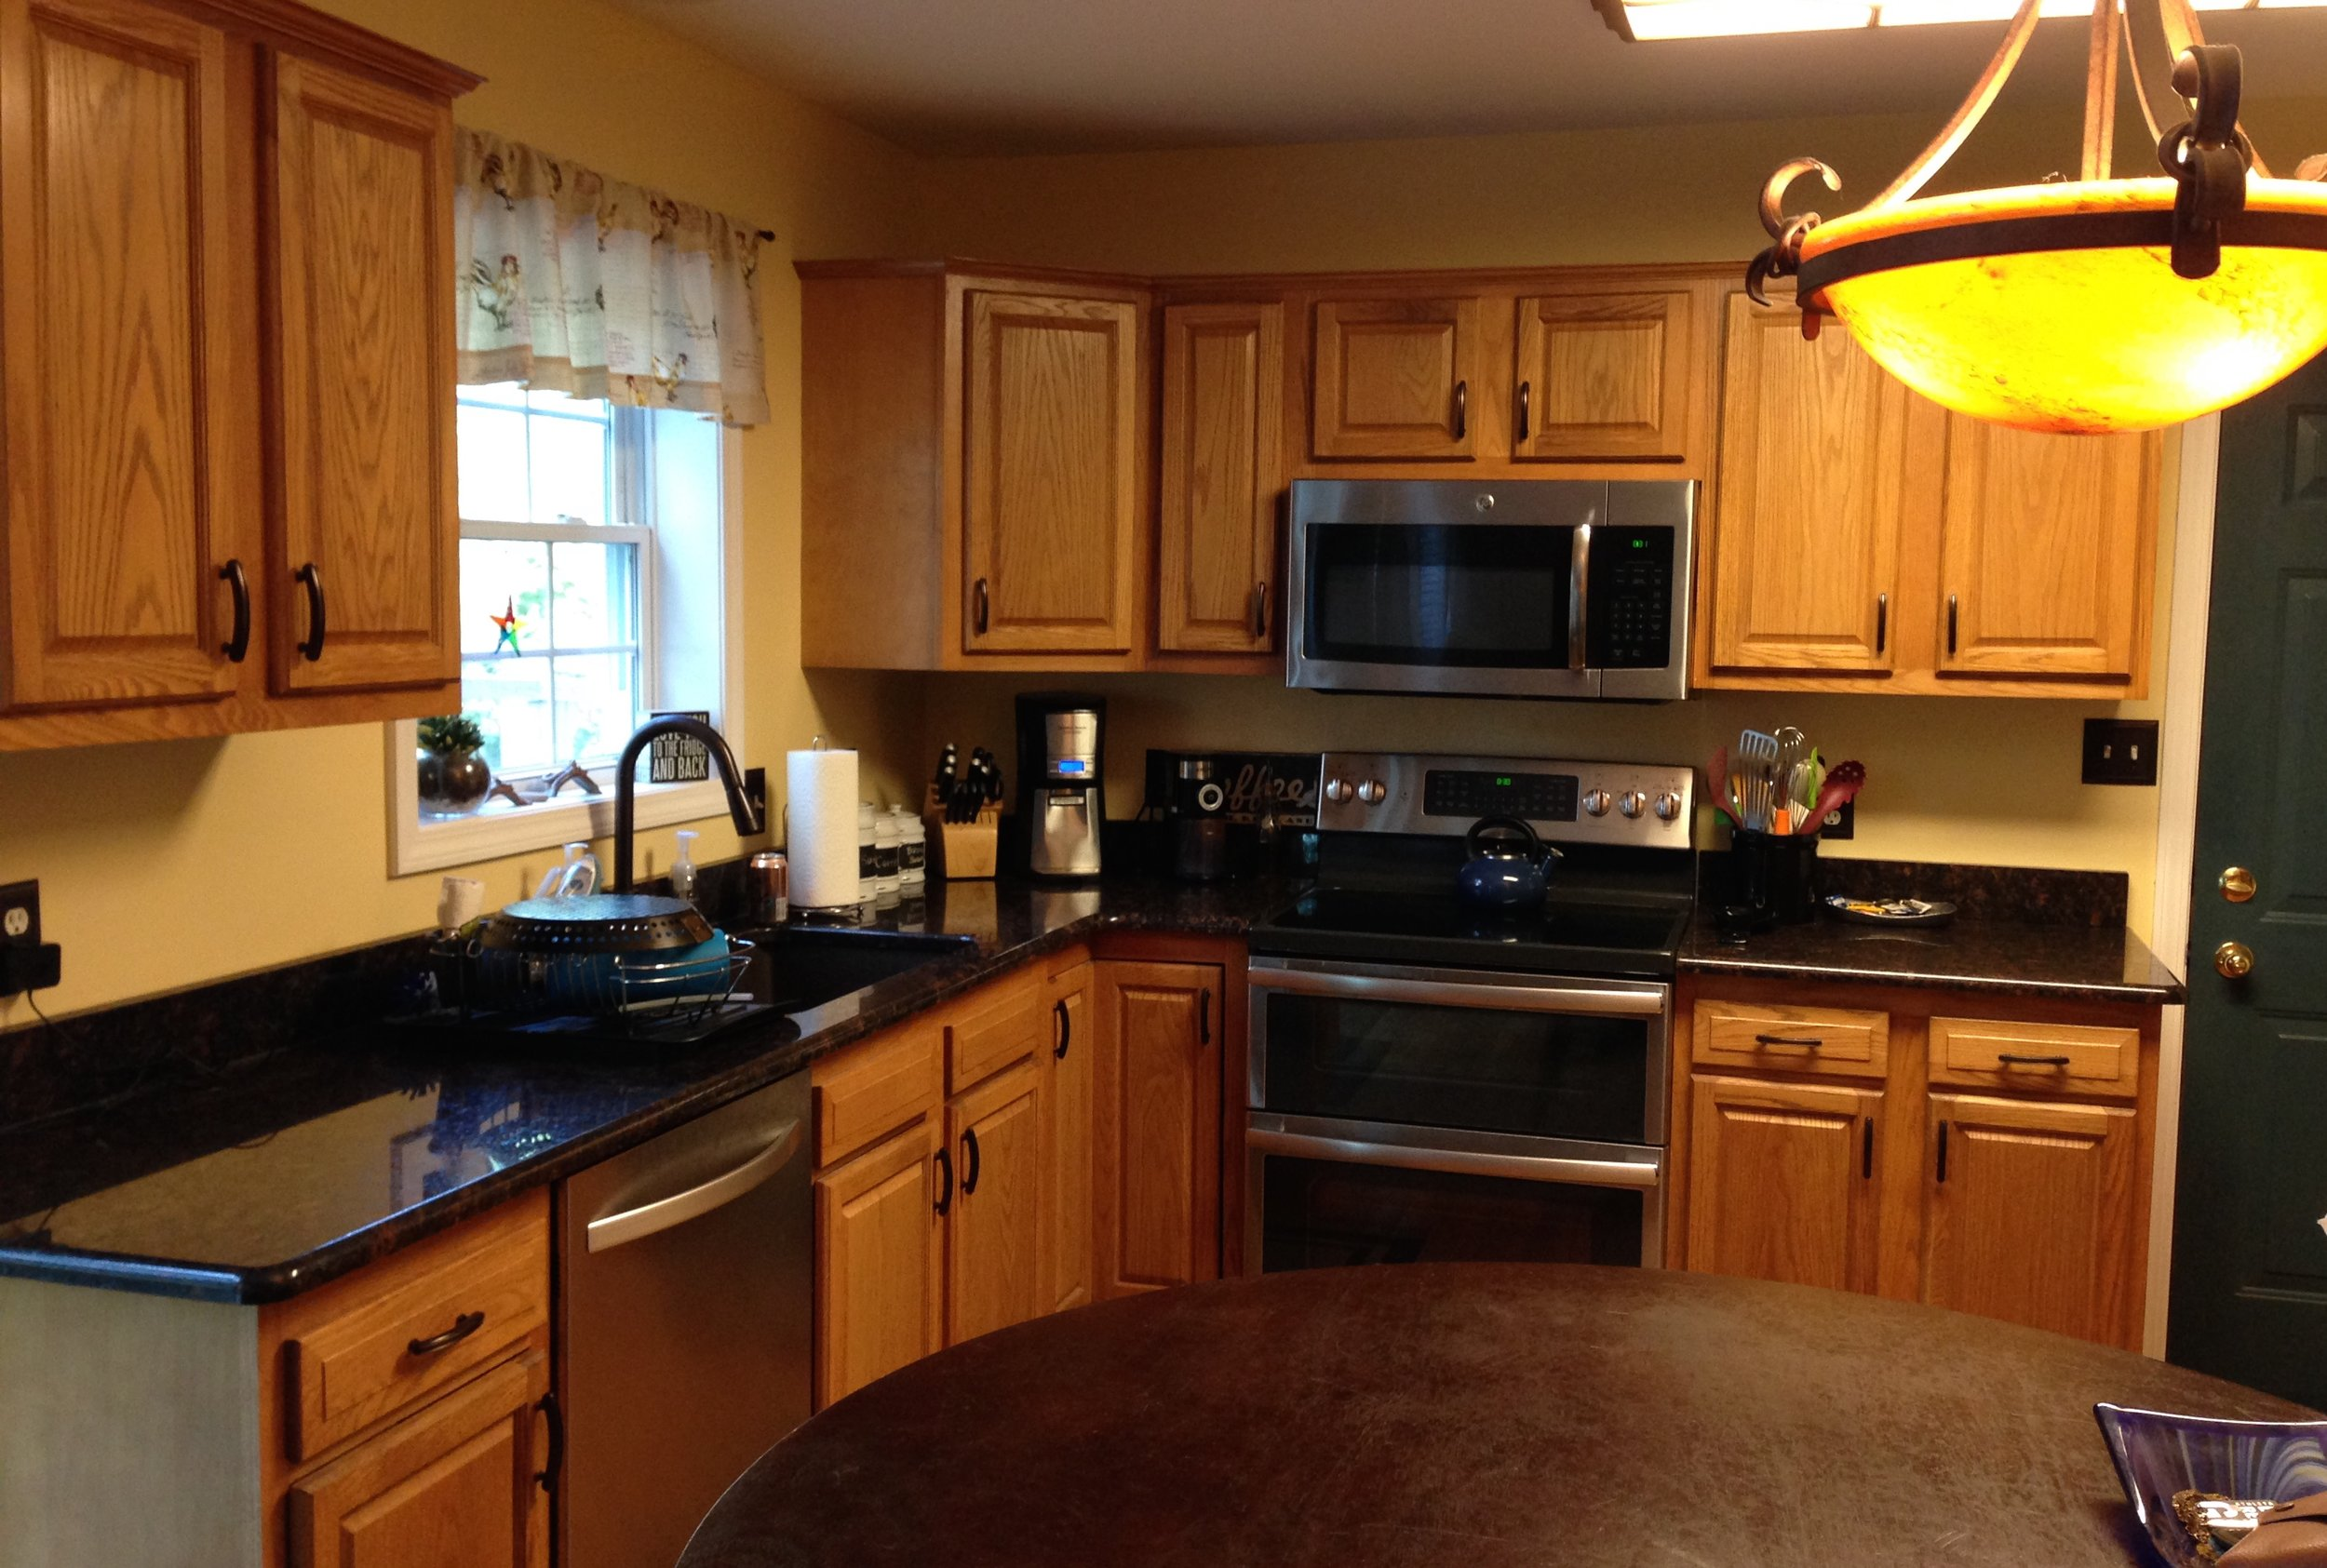 This Averill Park kitchen went from dark & drab to bright & beautiful!